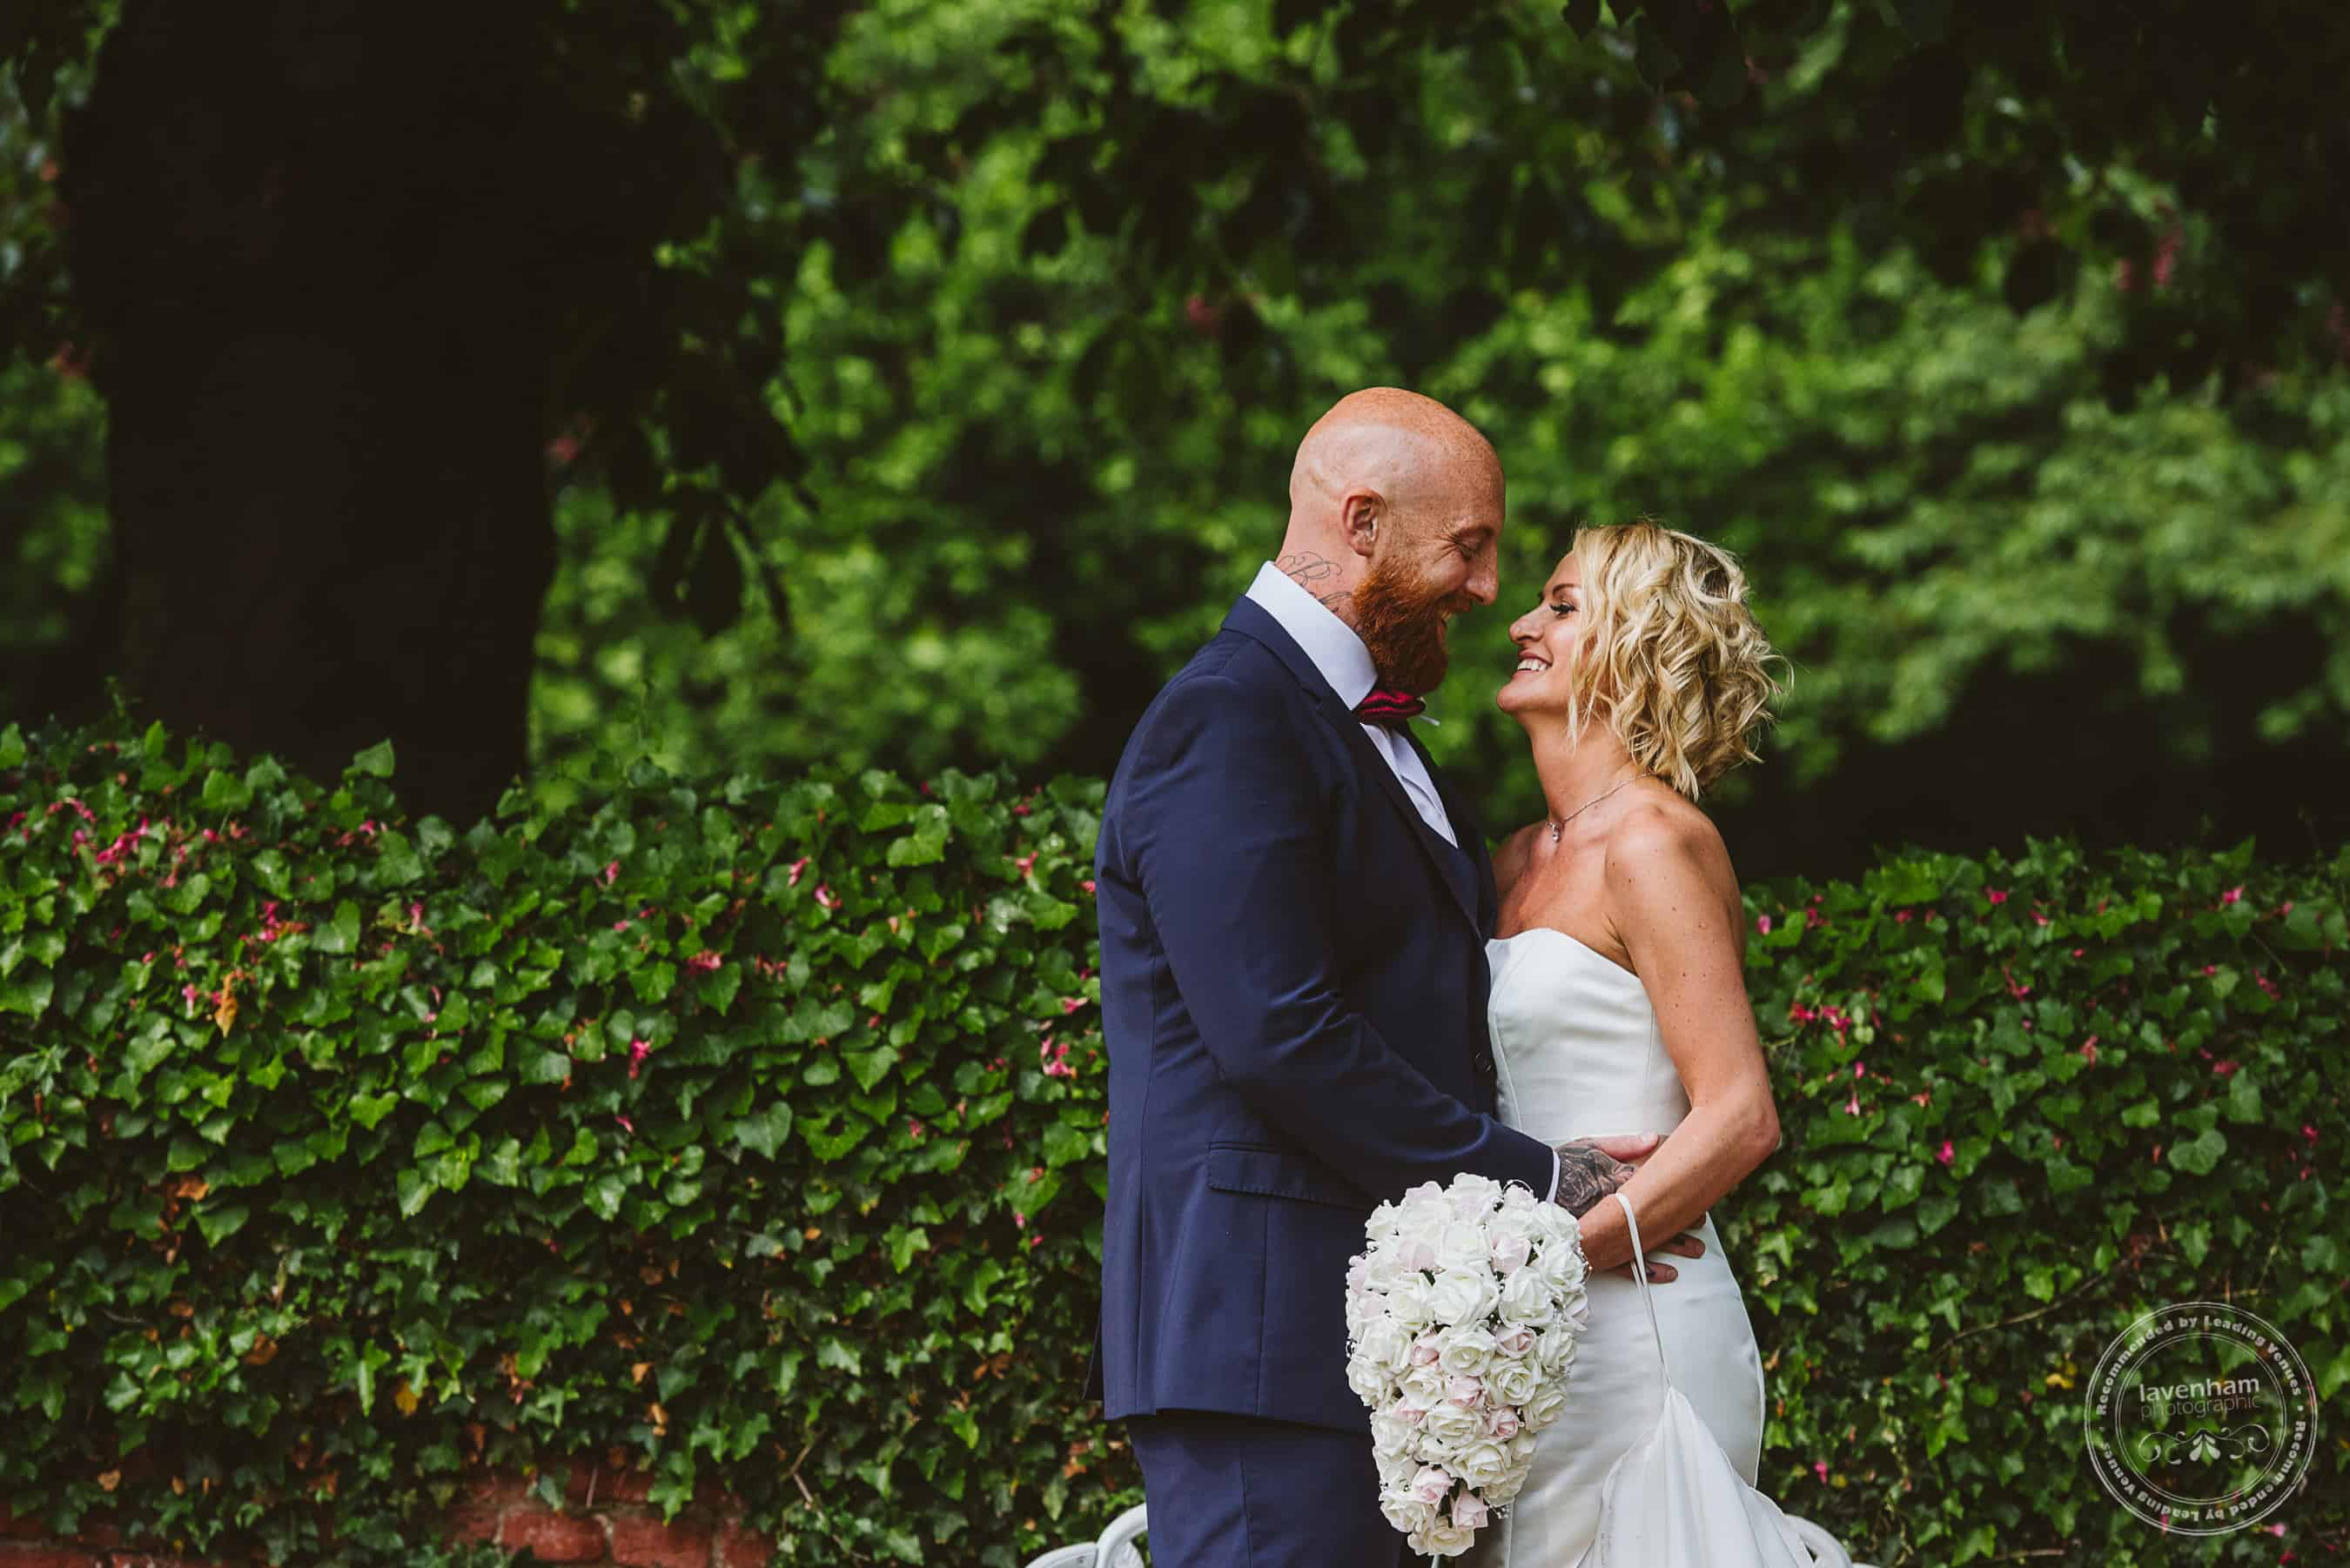 290518 Leez Priory Wedding Photography Lavenham Photographic 117